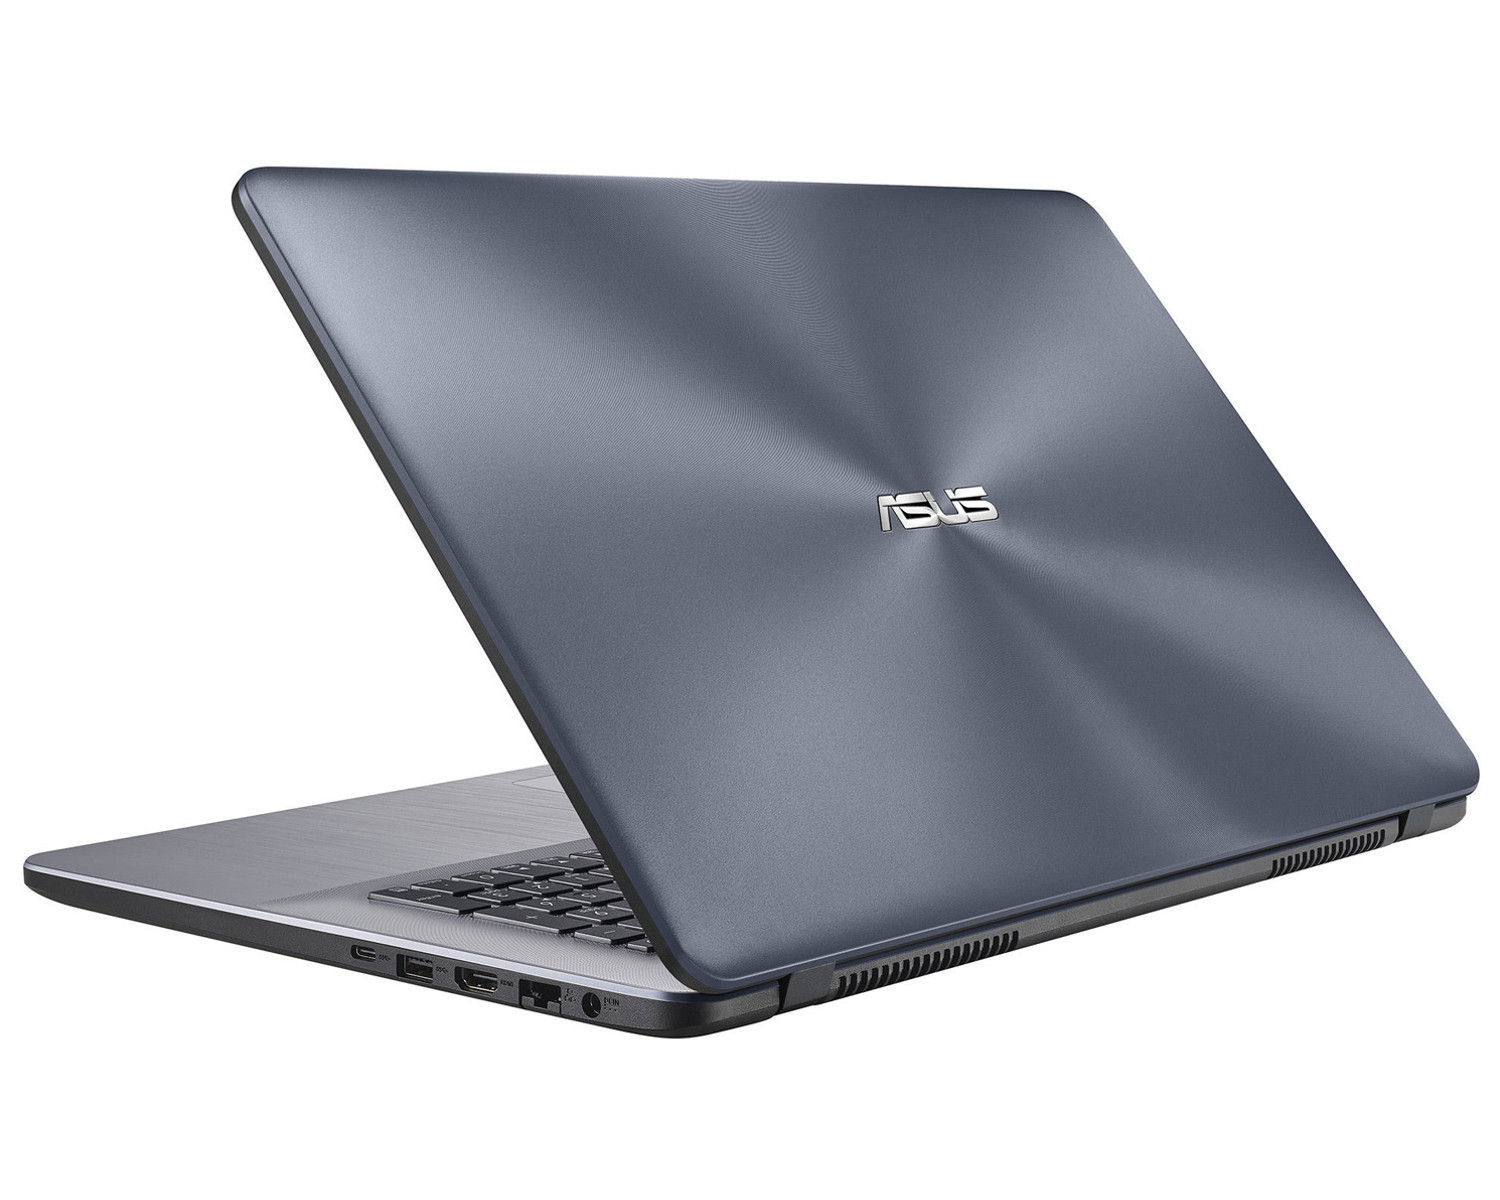 "Asus R702UB-BX112T à 799€, PC portable 17"" mat Quad i7 MX110 6 Go"